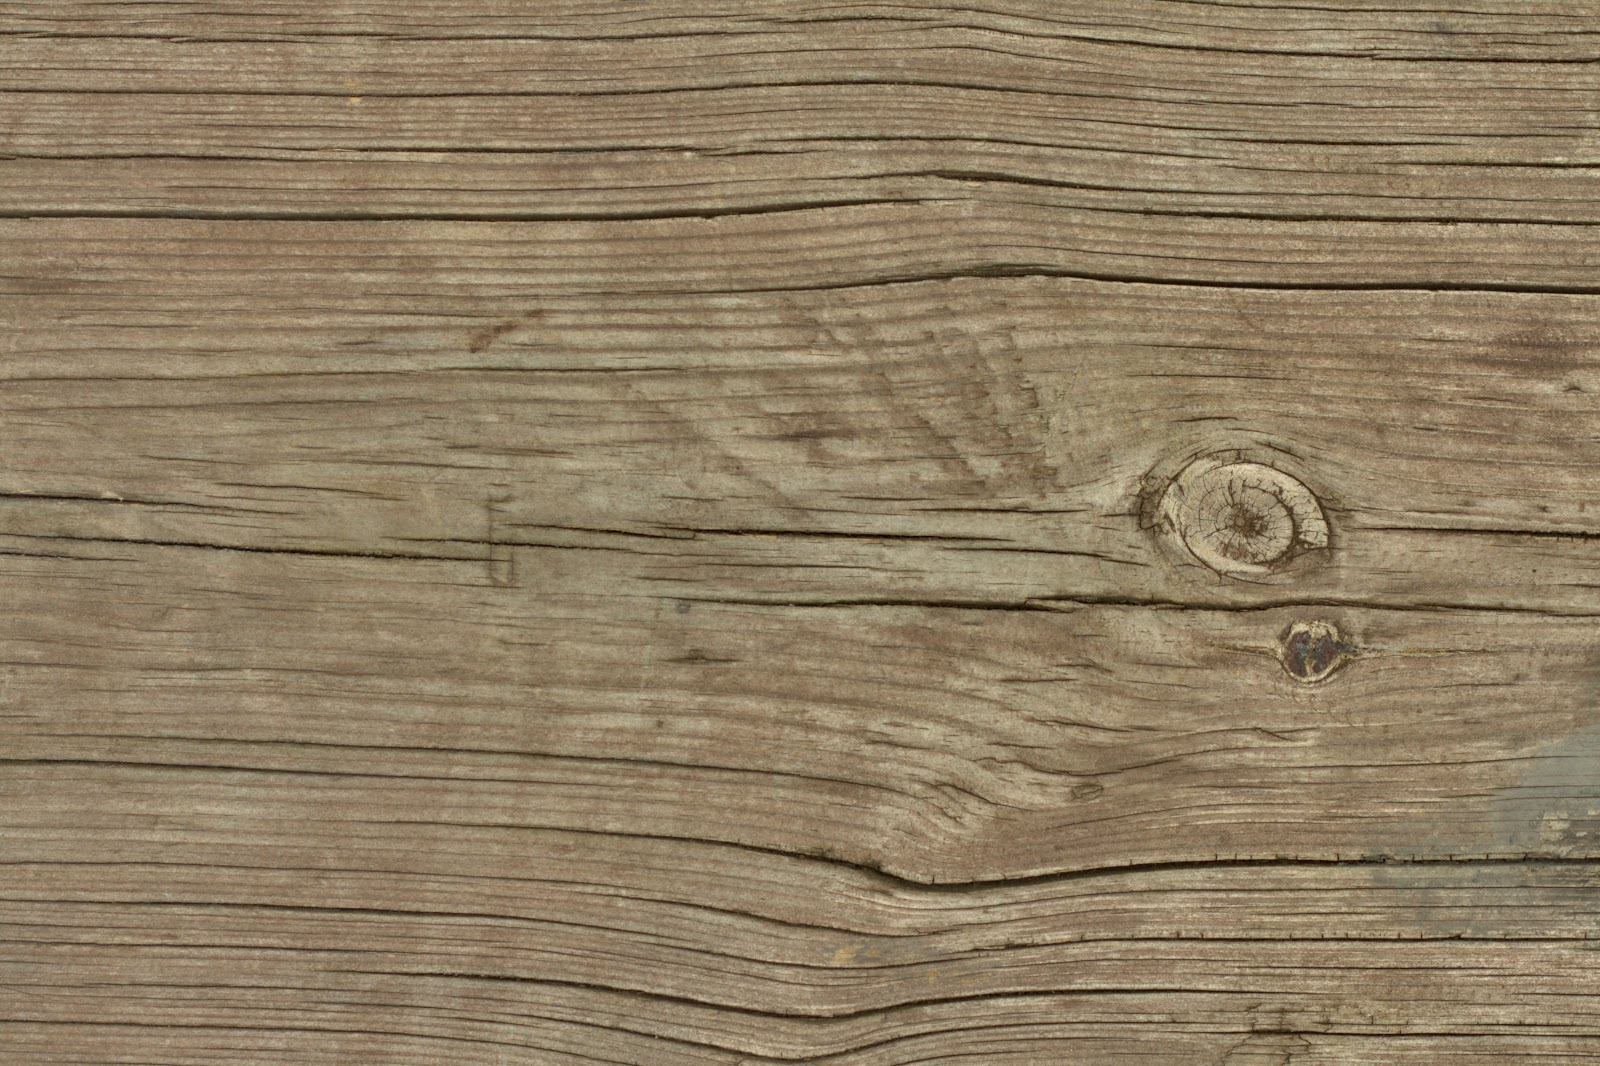 Wooden Post Texture high resolution seamless textures: (wood 2) dry cracked bench tree